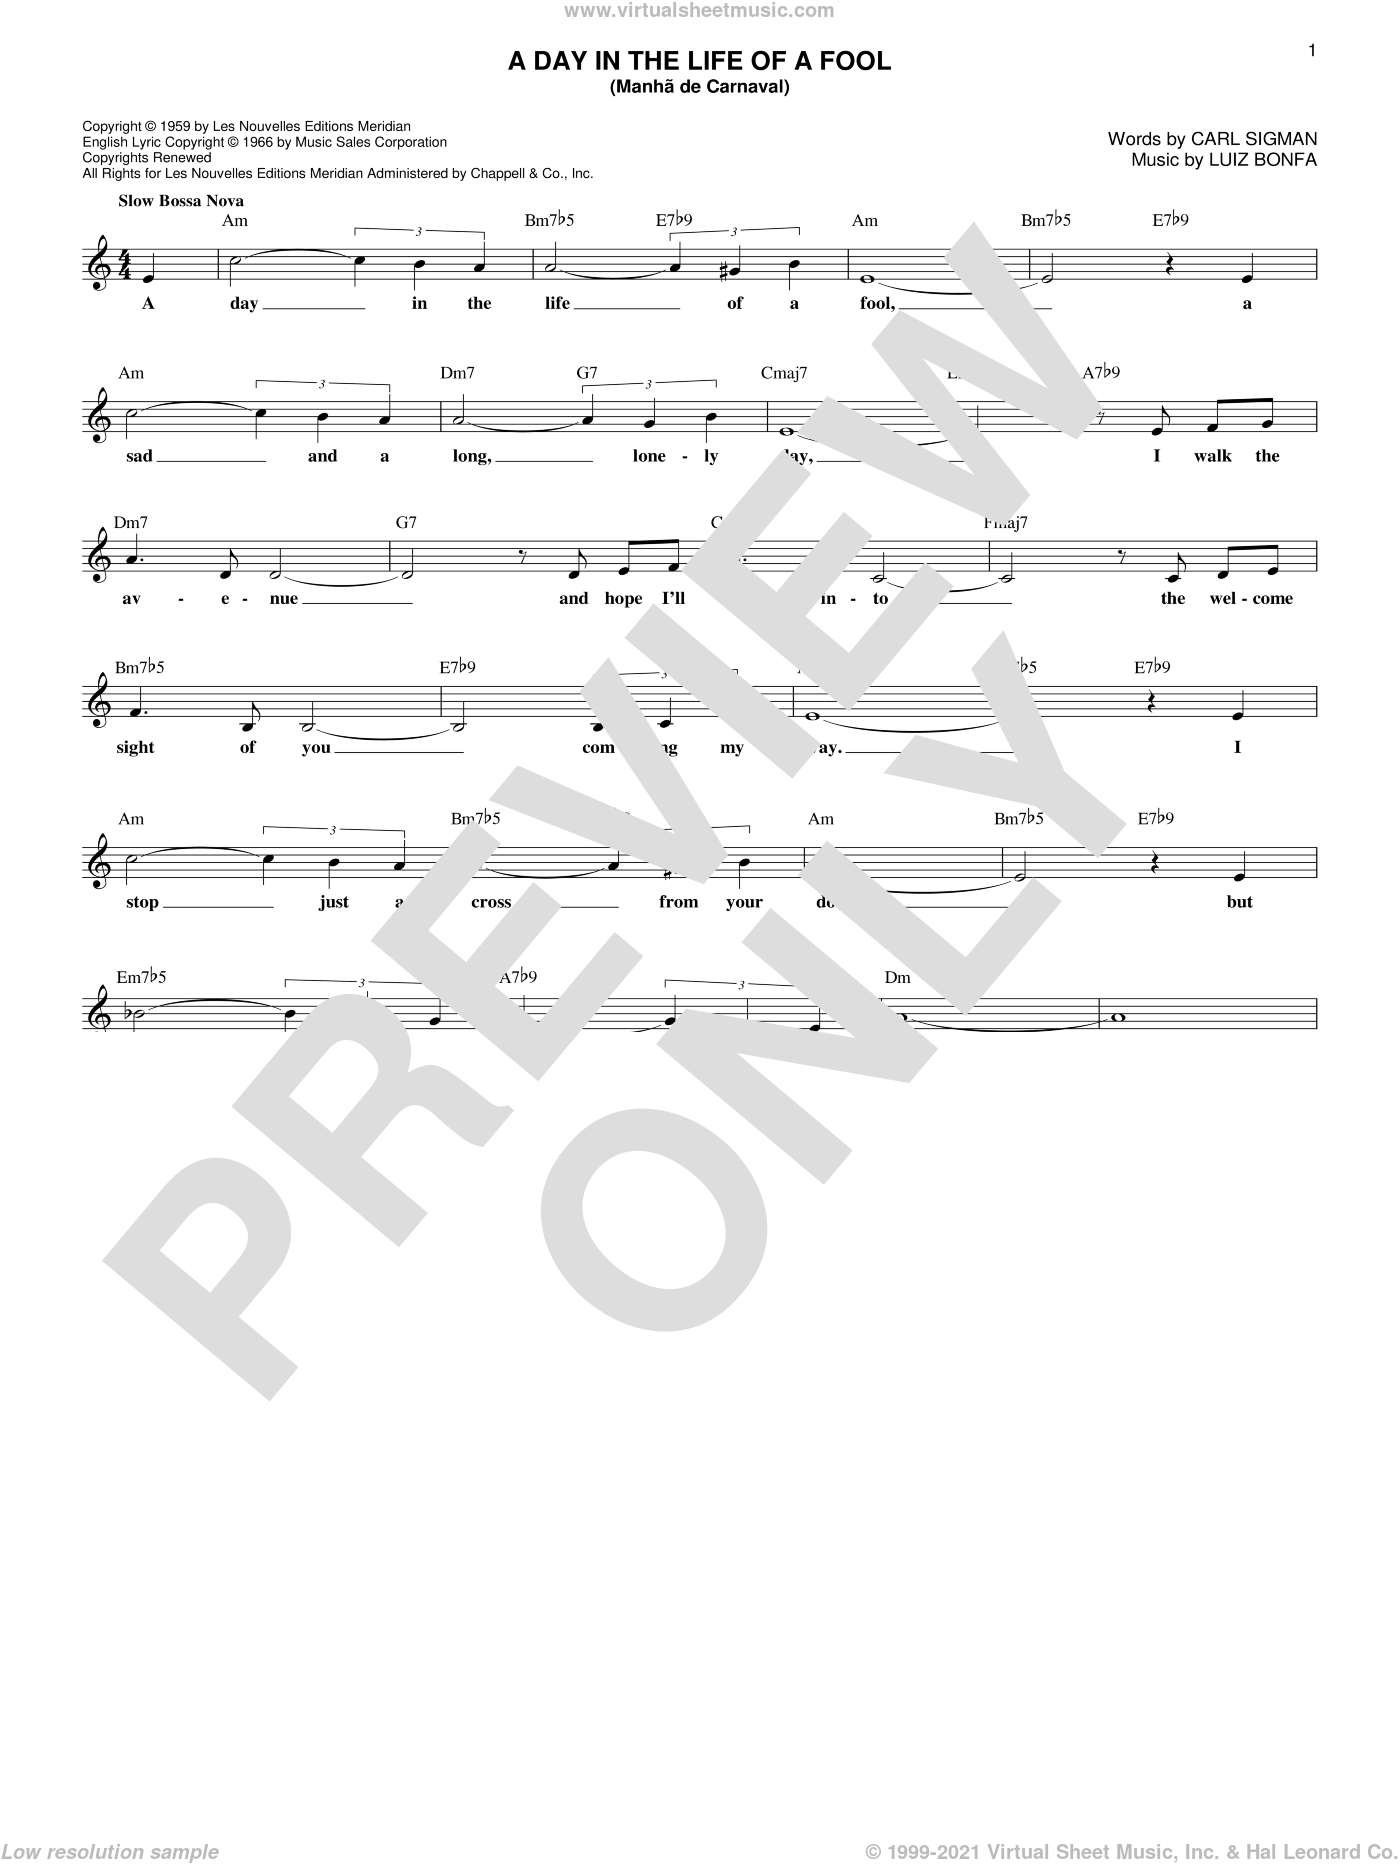 A Day In The Life Of A Fool (Manha De Carnaval) sheet music for voice and other instruments (fake book) by Luiz Bonfa and Carl Sigman, intermediate skill level